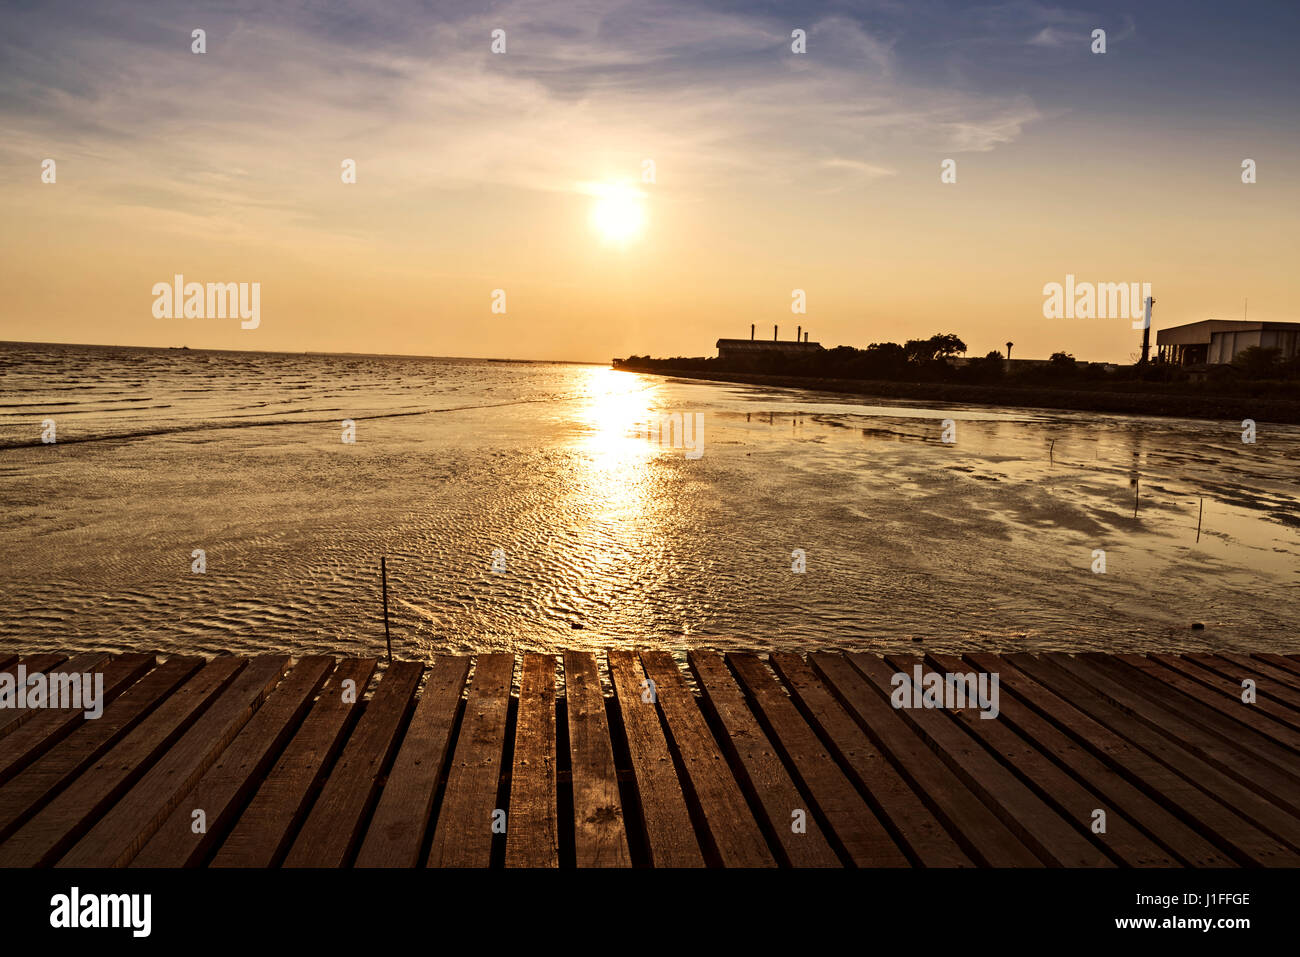 wooden bridge with beautiful sunset background above the sea, warm tone - Stock Image